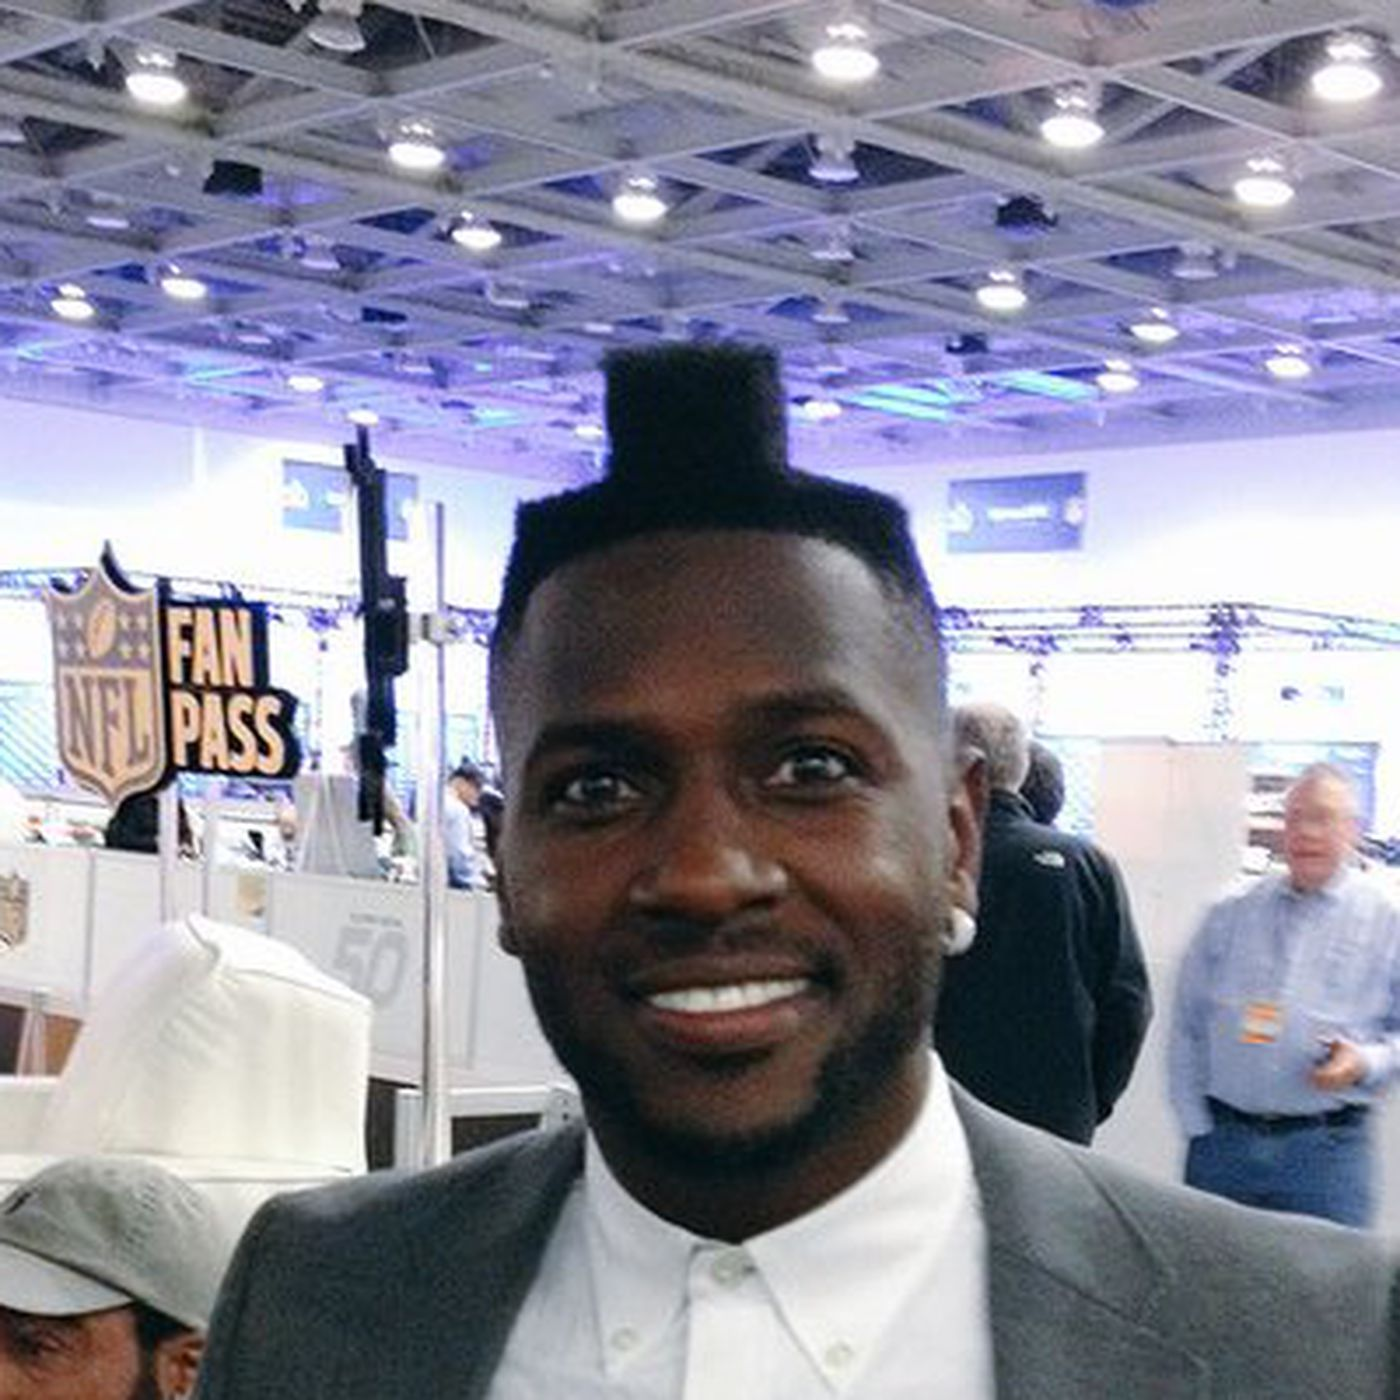 Antonio Brown is still rocking the Tetris haircut at the Super